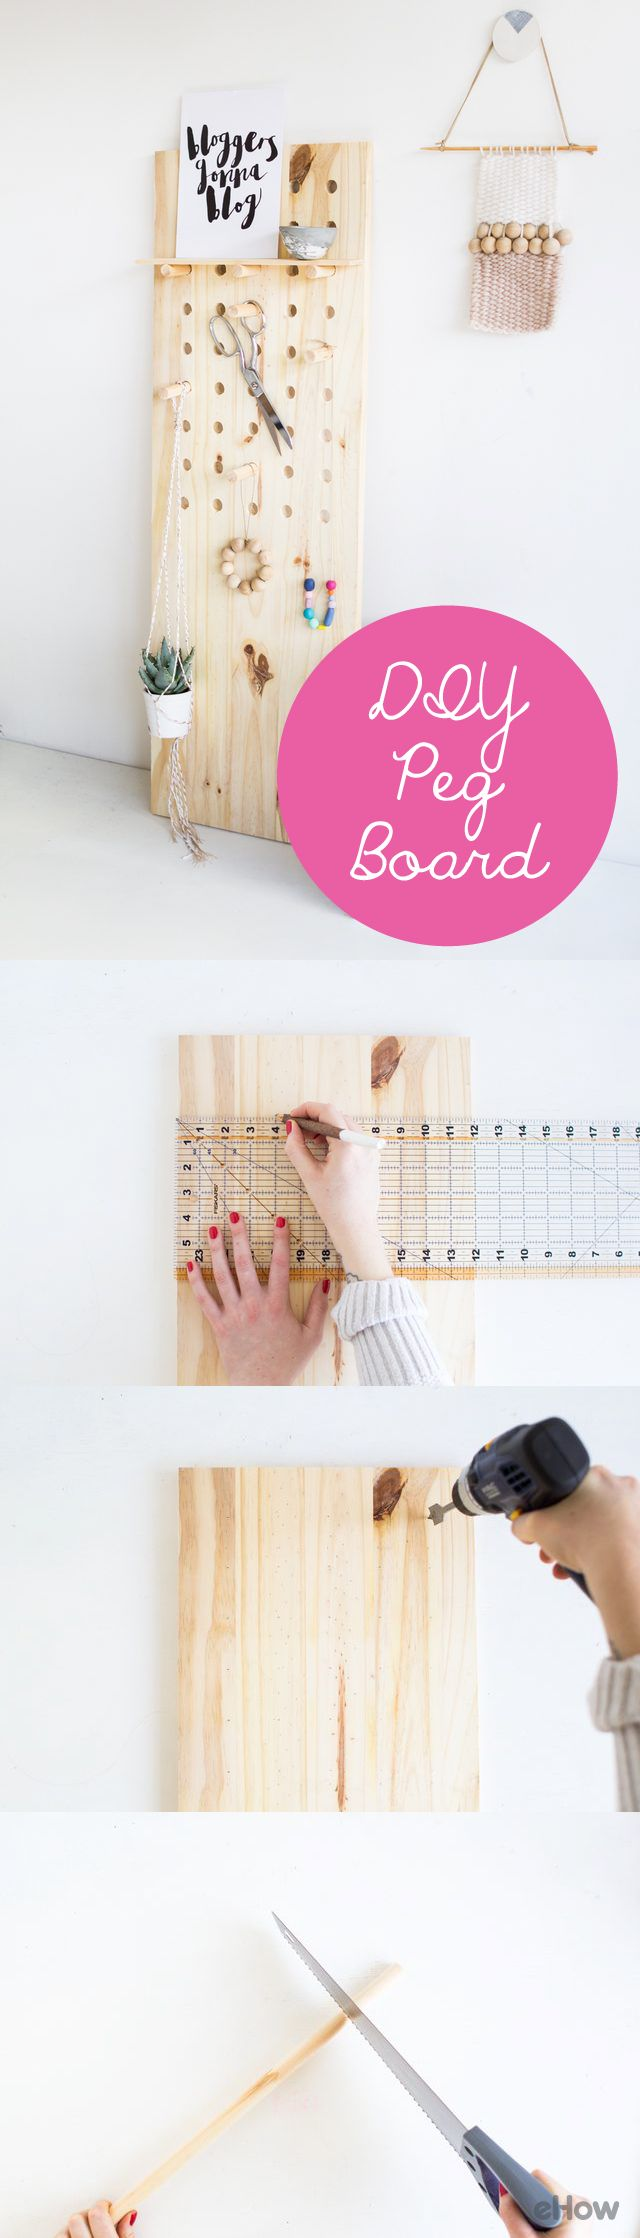 This over-sized peg board can help you organize and arrange tools, artwork, even plants! Plus, the extra shelf storage comes in very handy for things you can't hang. DIY instructions here: http://www.ehow.com/how_6548599_make-own-peg-board.html?utm_source=pinterest.com&utm_medium=referral&utm_content=freestyle&utm_campaign=fanpage